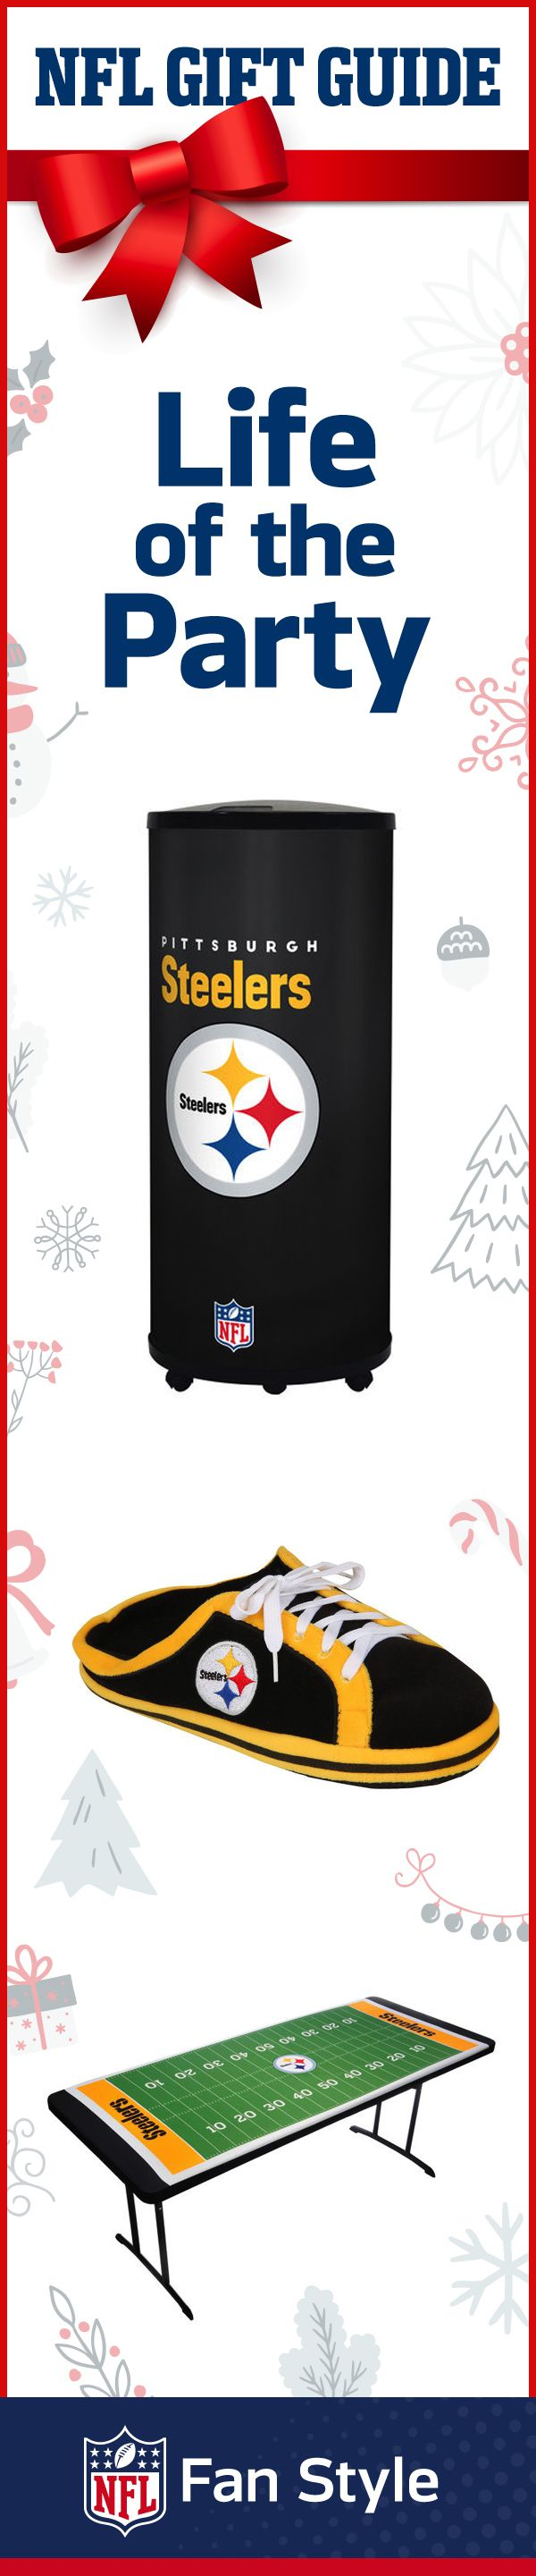 For the fan who loves to be the center of attention, this holiday package will draw all eyes. Help them make the most popular fancave with a Steeler's cooler, sneaker-slippers, and party table.